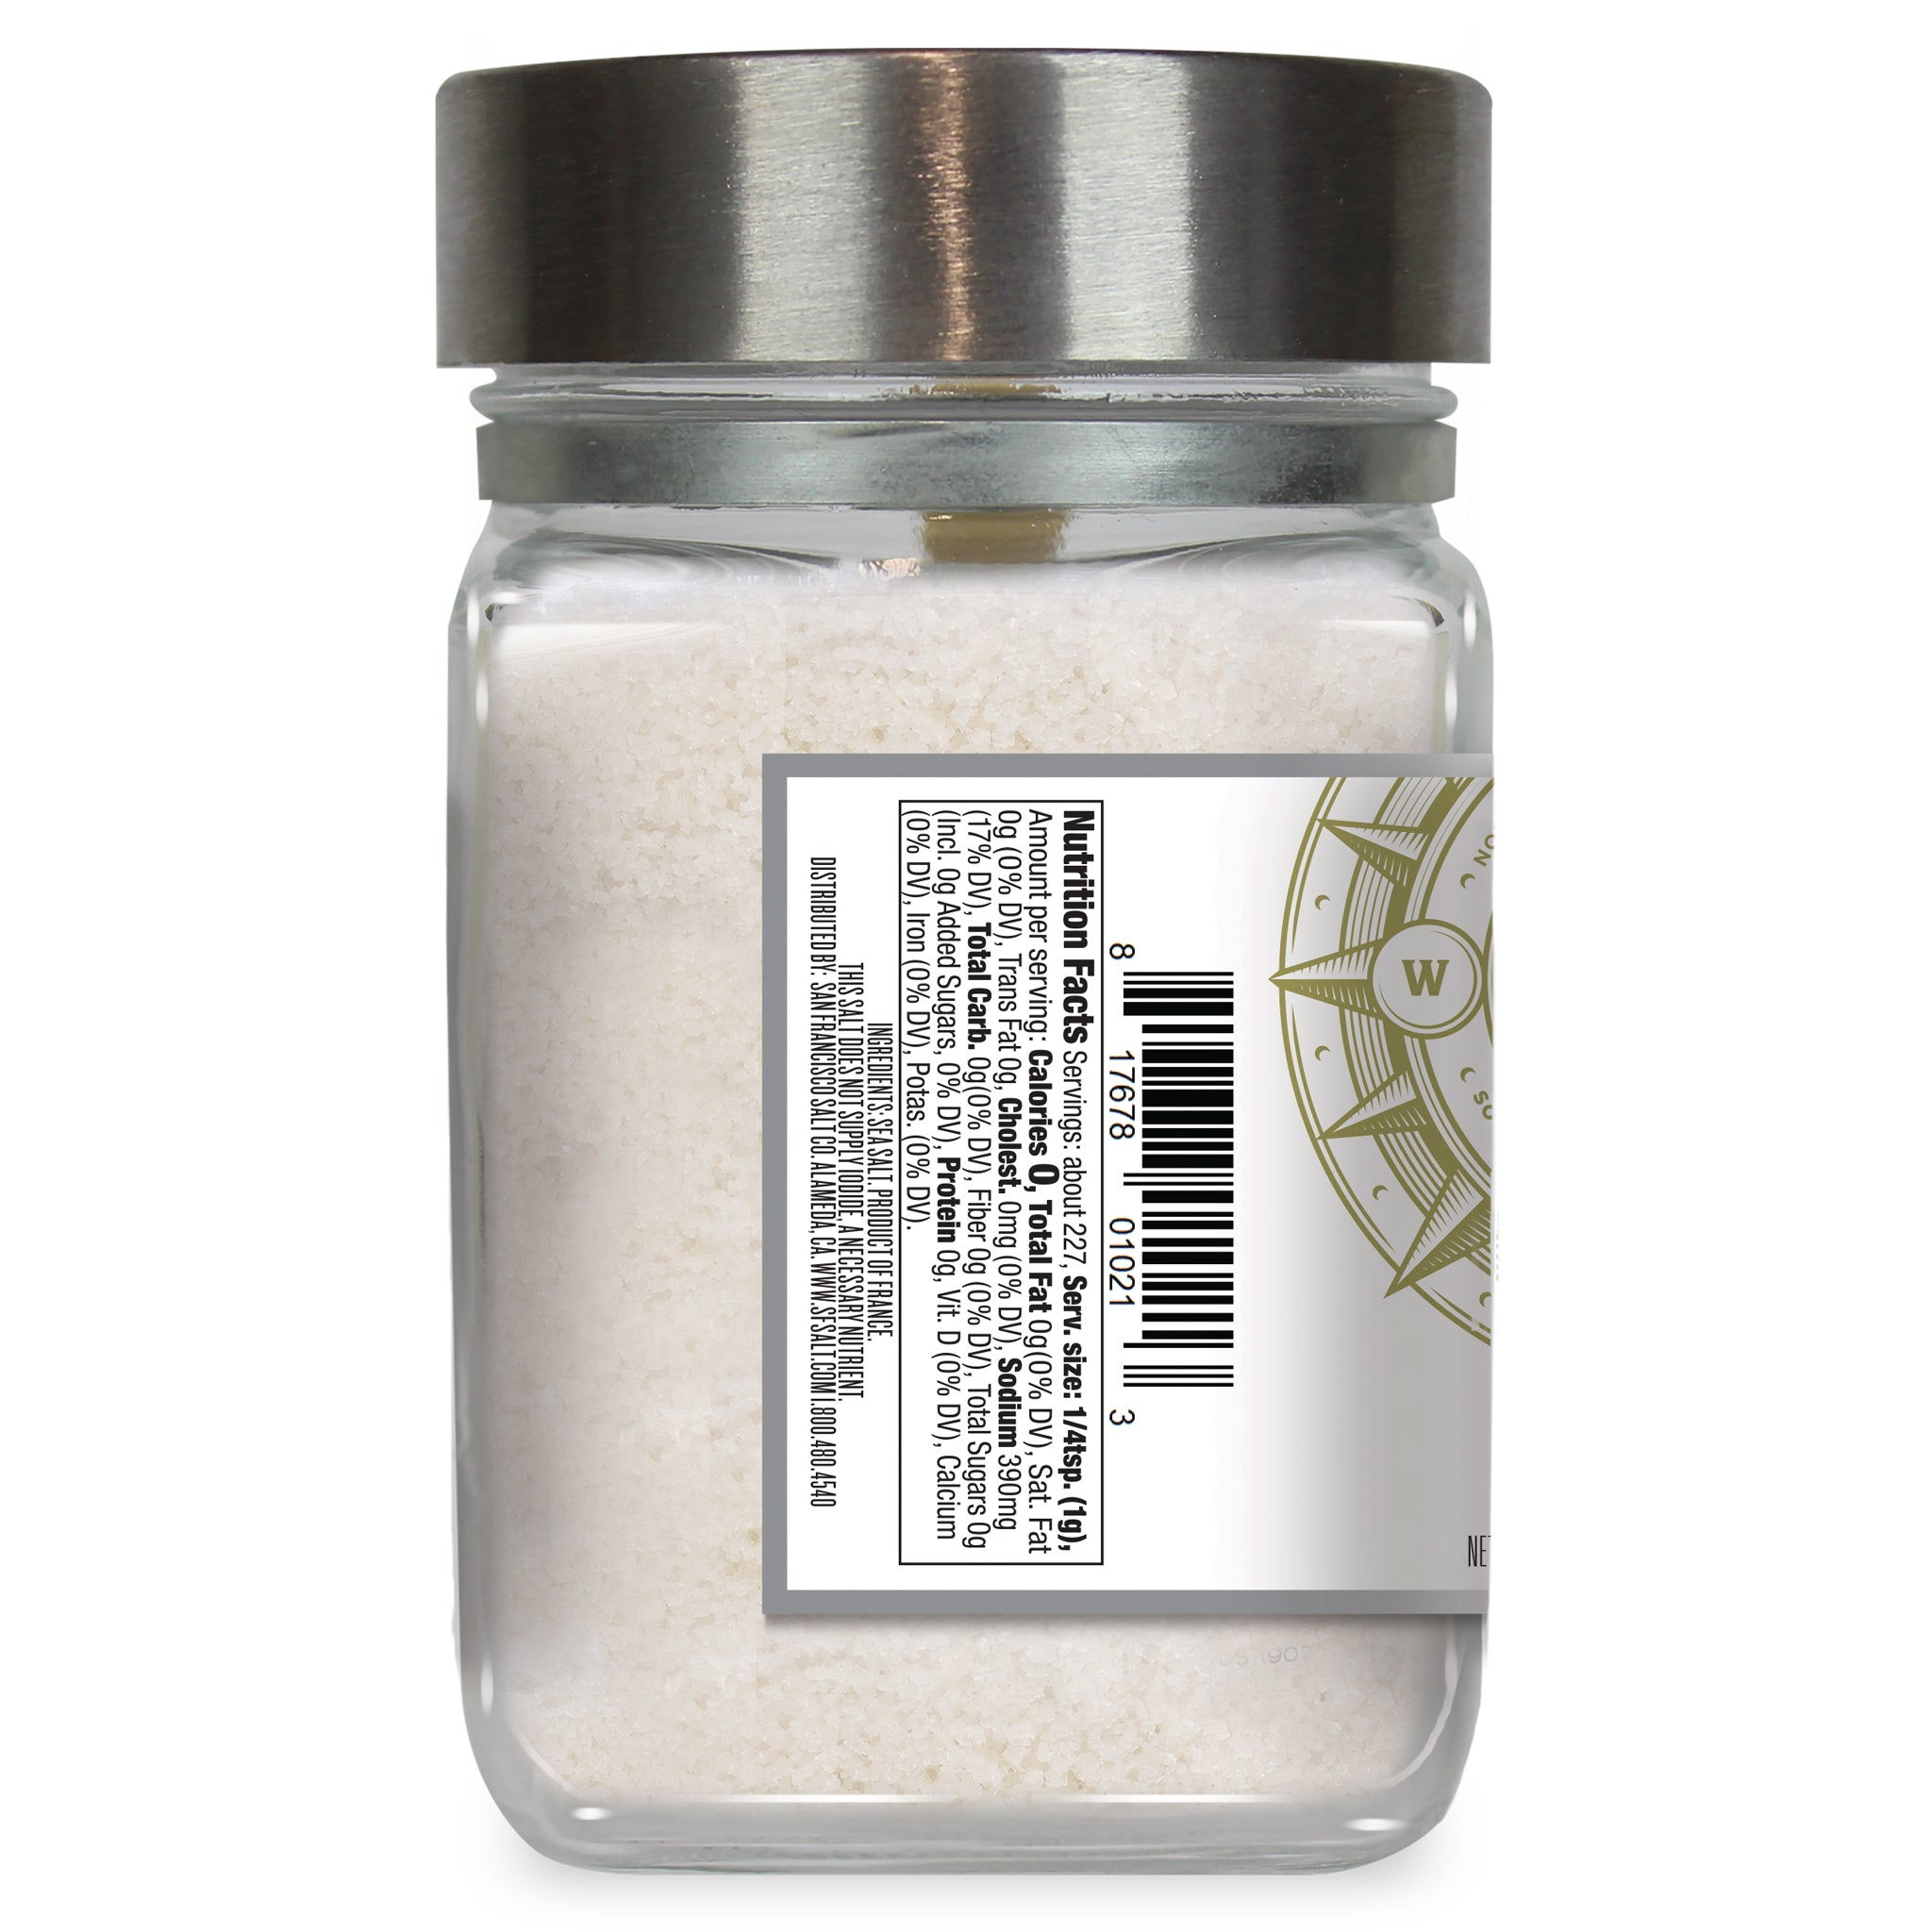 Fleur de Sel 8 oz. Chef's Jar - San Francisco Salt Company